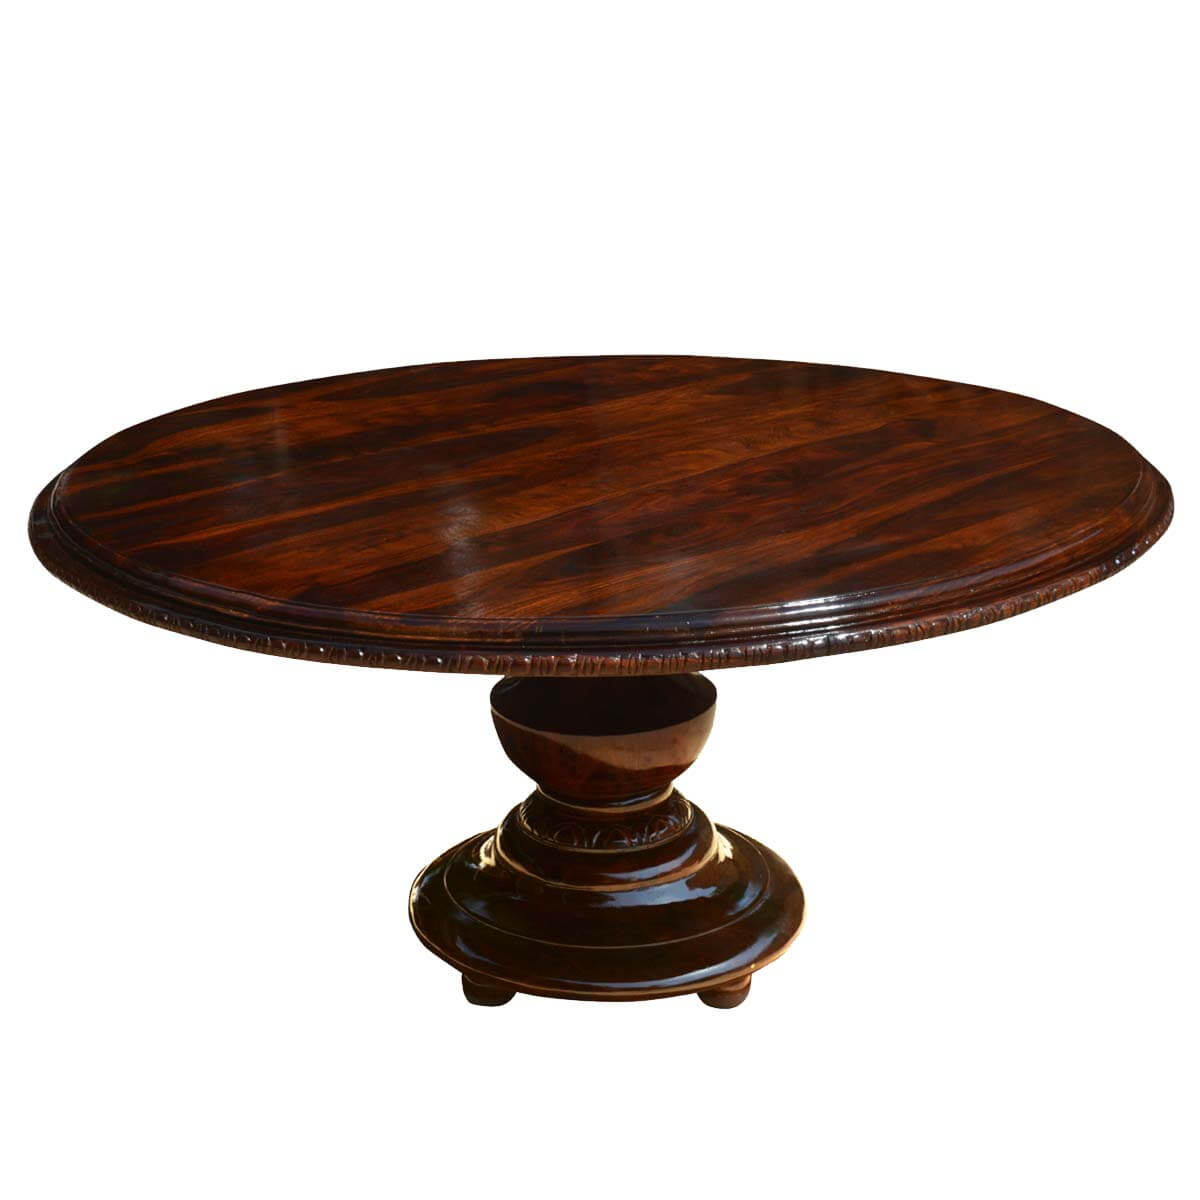 rustic solid wood pedestal round dining table. Black Bedroom Furniture Sets. Home Design Ideas